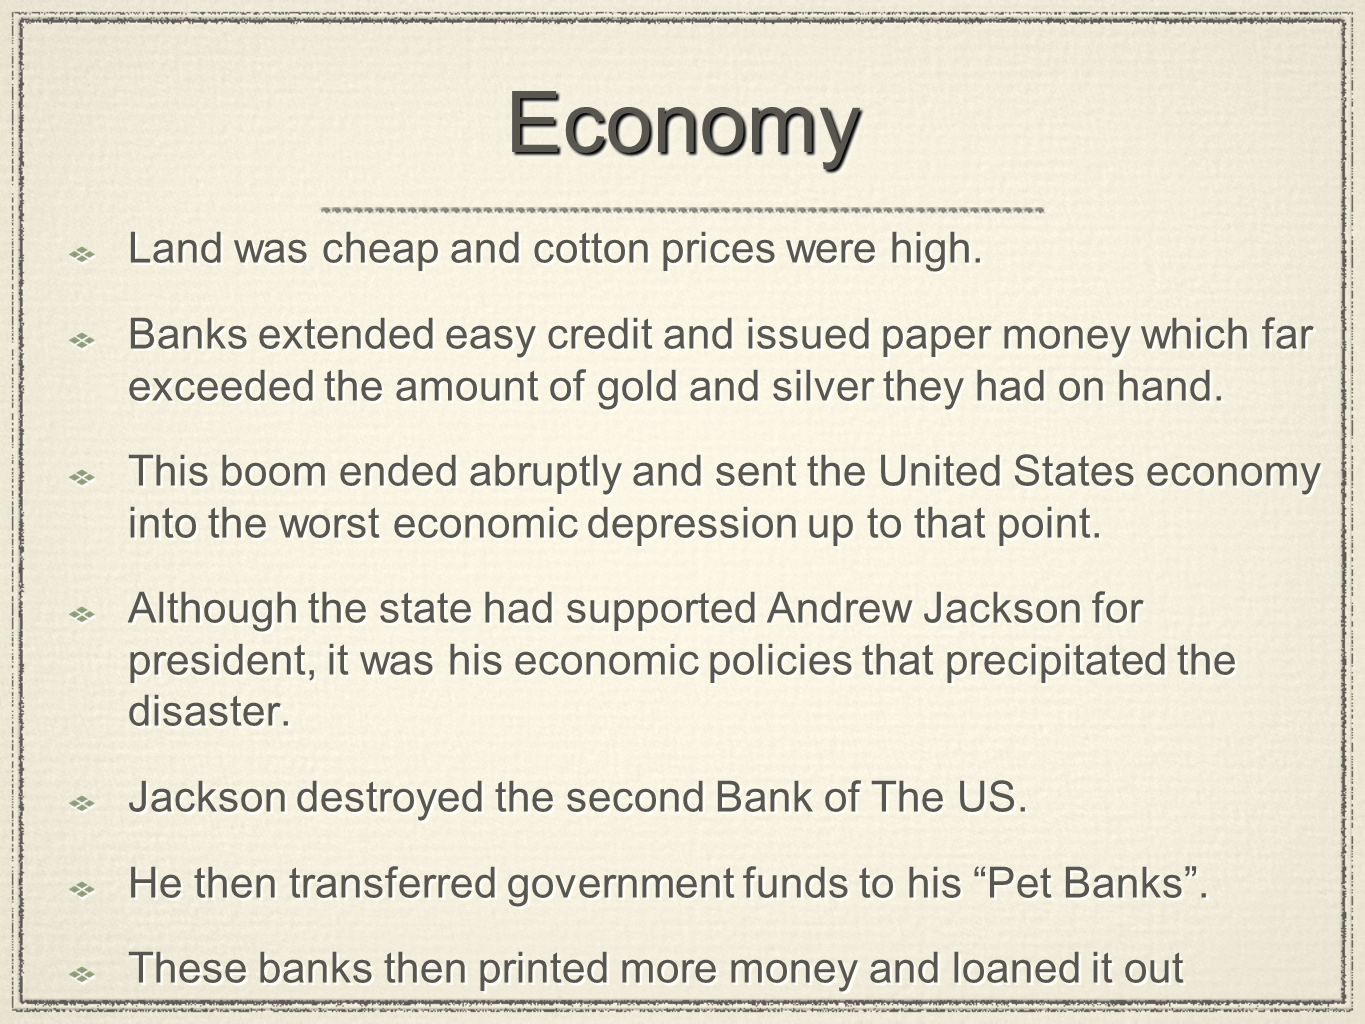 EconomyEconomy Land was cheap and cotton prices were high. Banks extended easy credit and issued paper money which far exceeded the amount of gold and